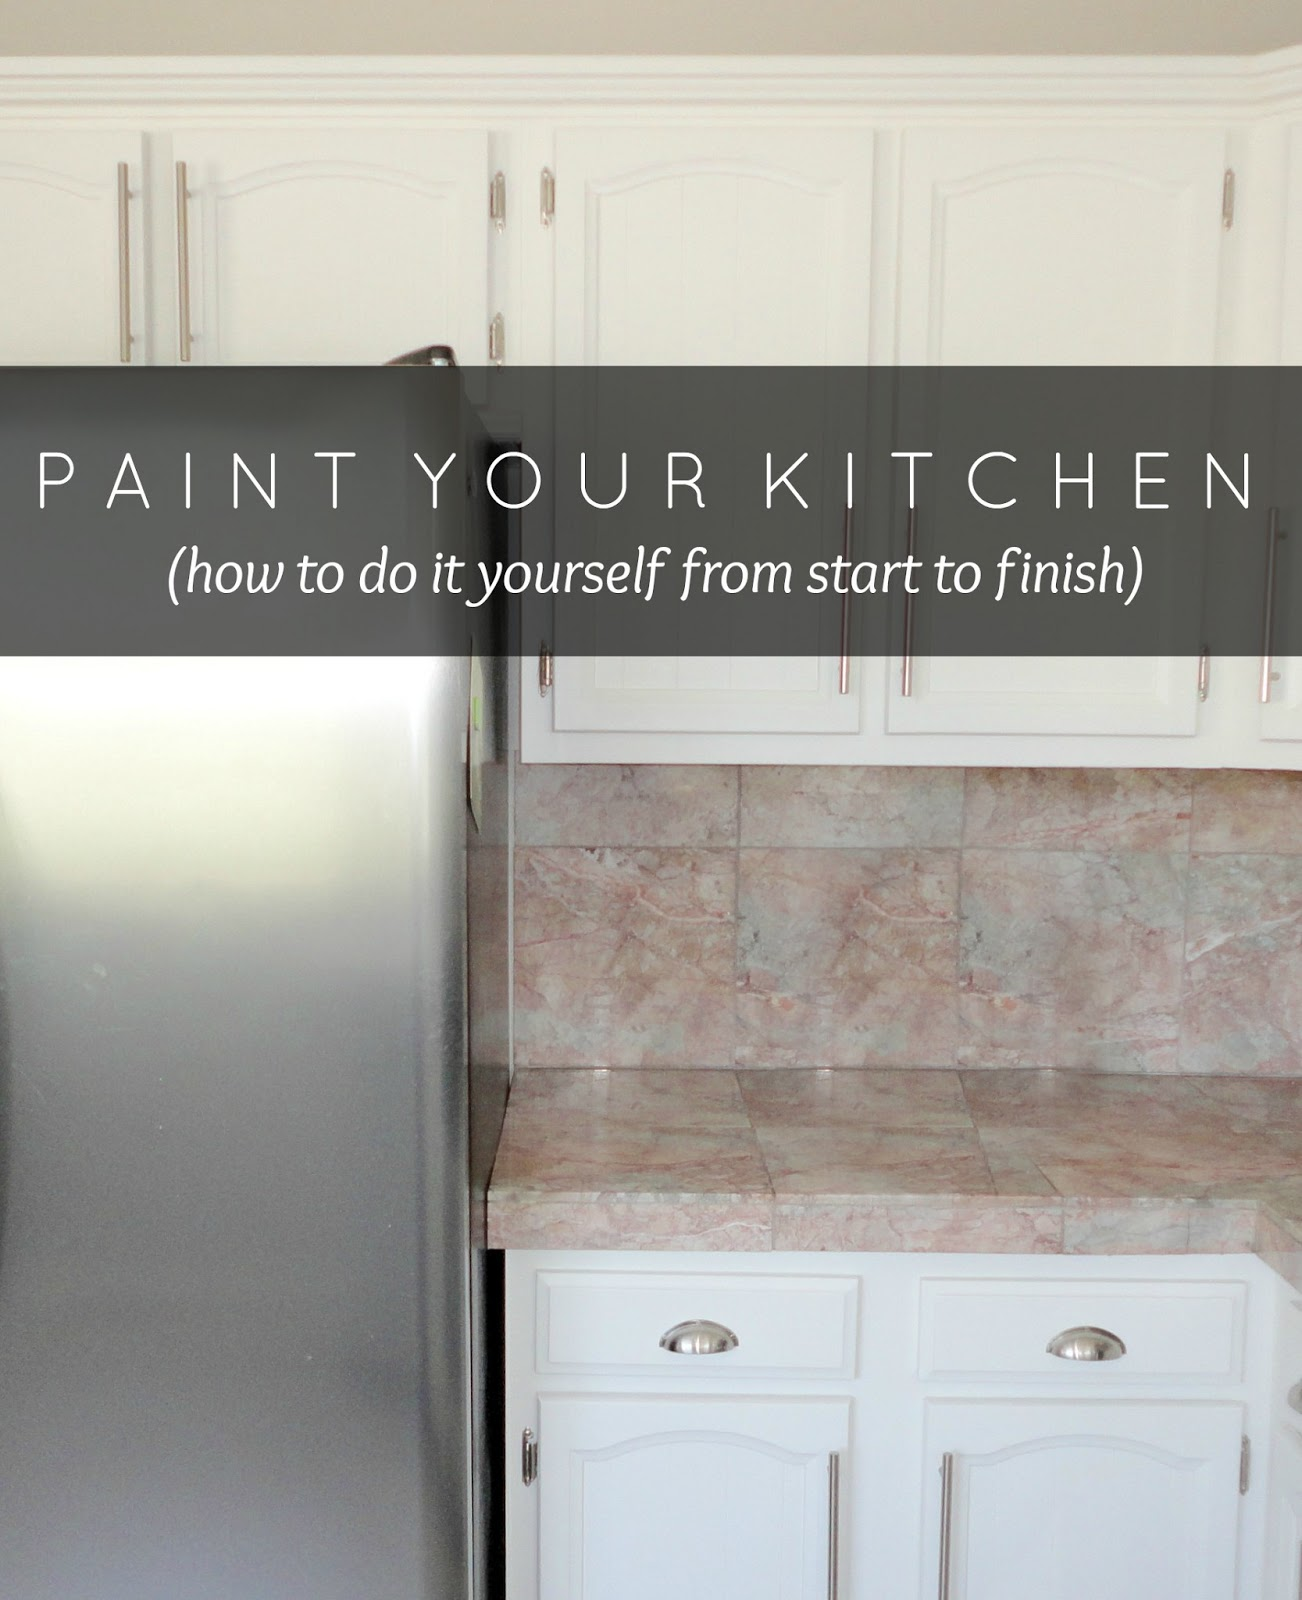 Livelovediy How To Paint Kitchen Cabinets In 10 Easy Steps. Fall Kitchen Decor. Kitchen Model. Gourmet Kitchen Supplies. Ina Garten Kitchen. American Standard Kitchen Faucet Parts. Kitchen Littles. Best Kitchen Hoods. Kitchen Framed Art